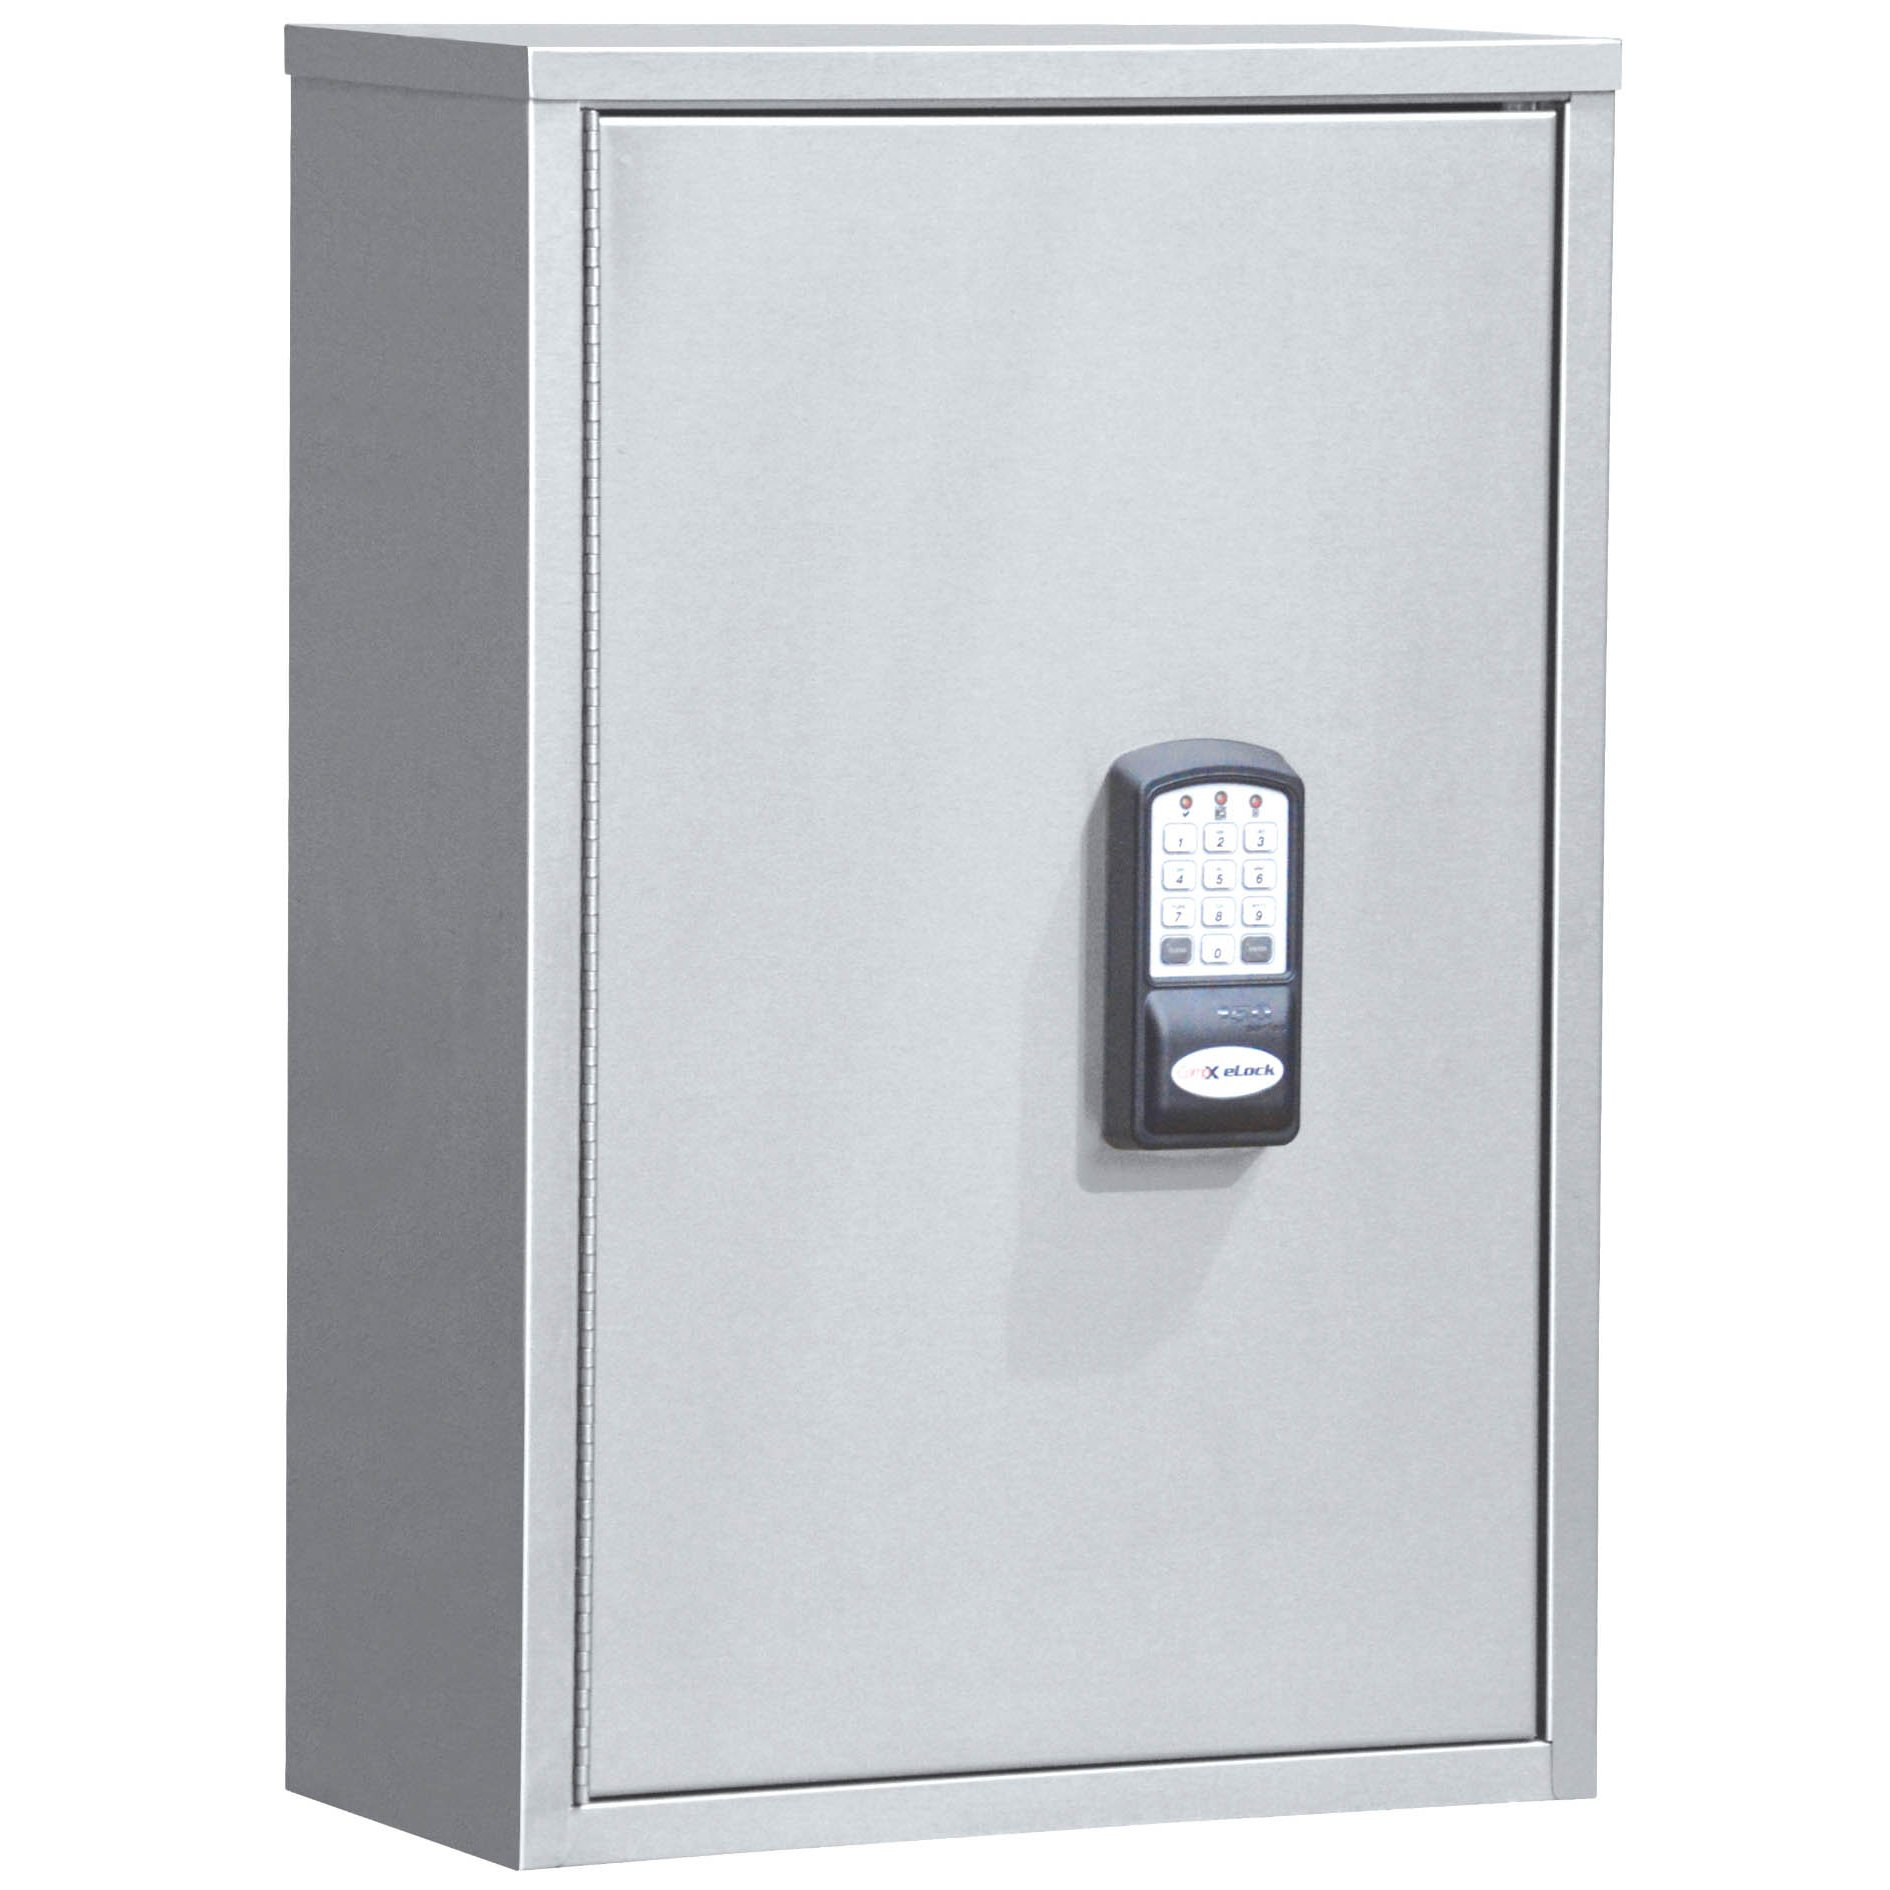 Omnimed 181488 Deluxe Narcotic Cabinet With Digital Keypad Lock Hid Iclass Reader